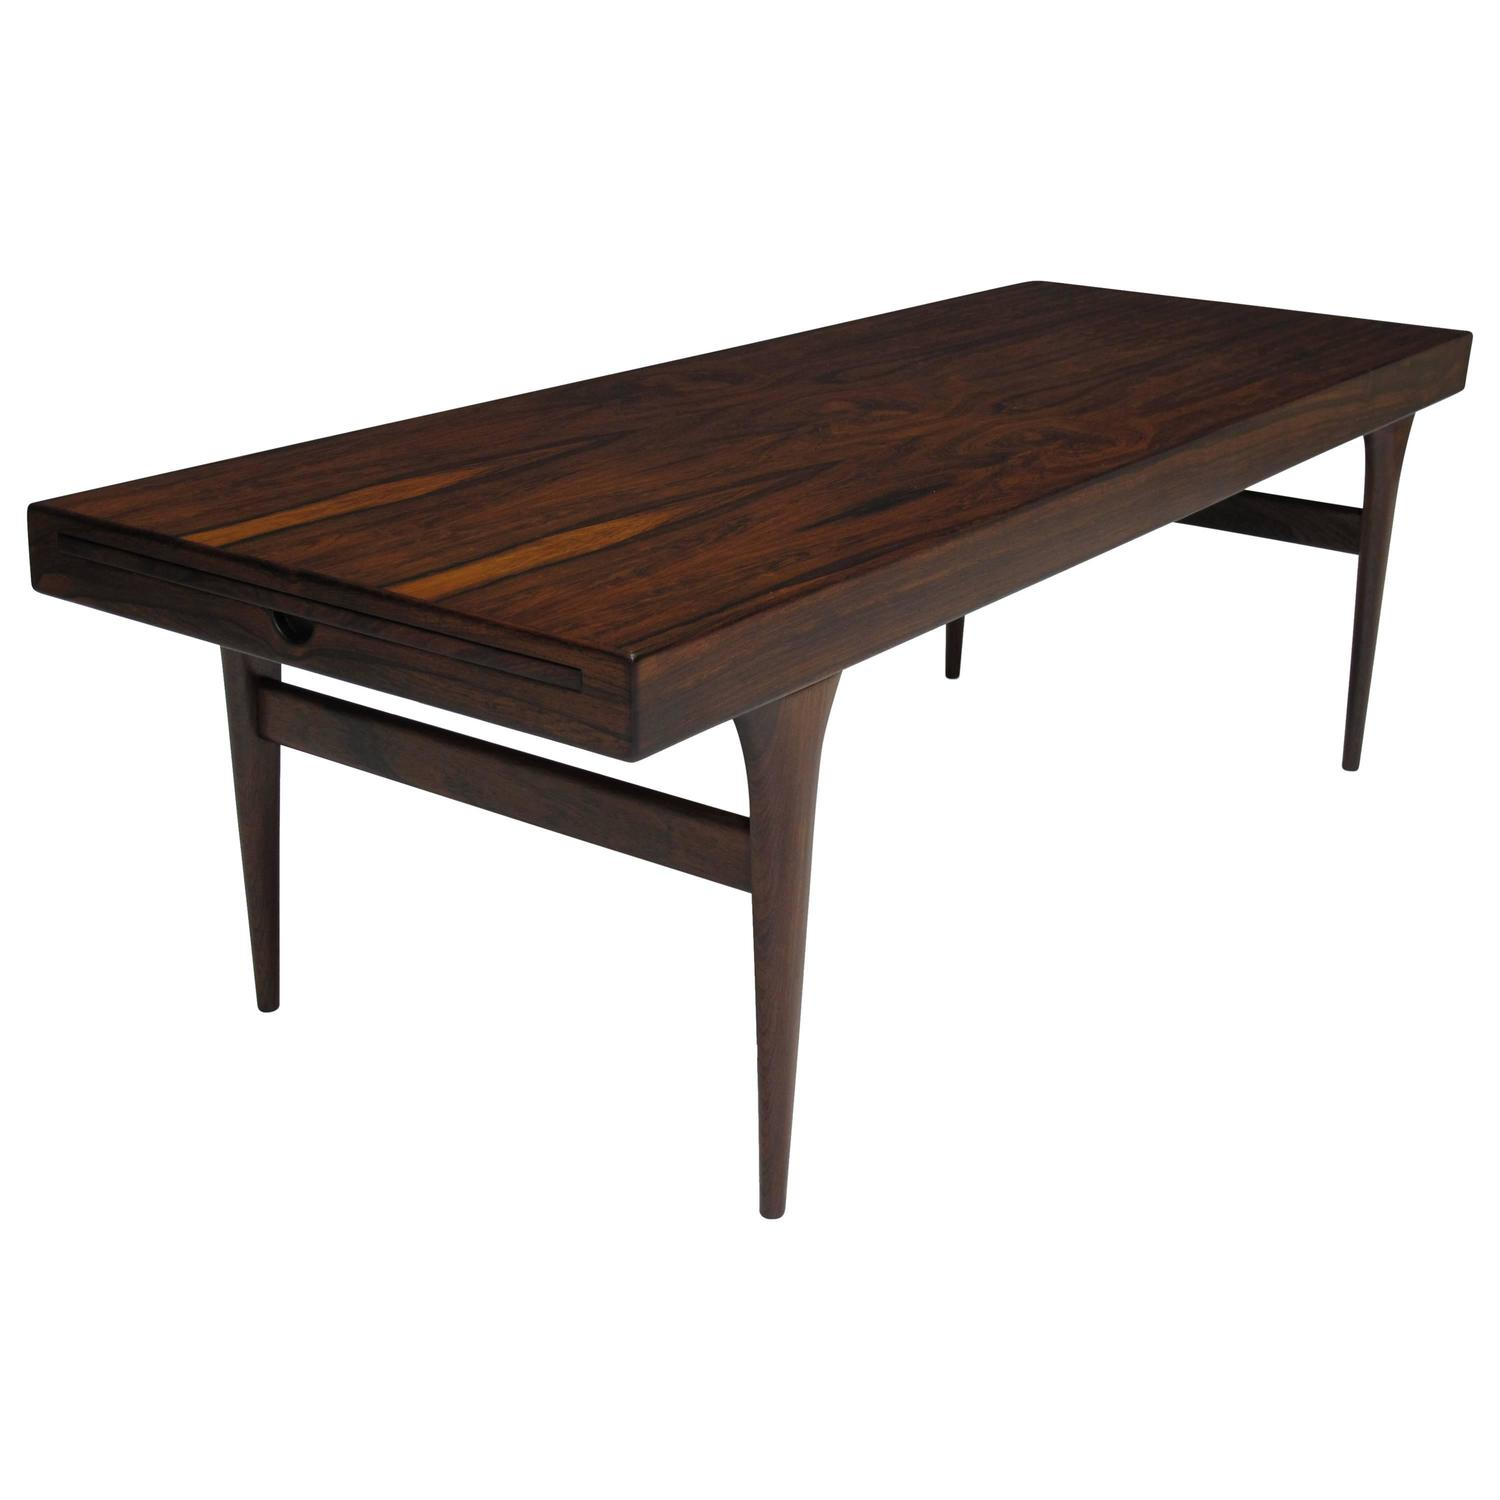 Johannes Andersen Danish Rosewood Coffee Table At 1stdibs